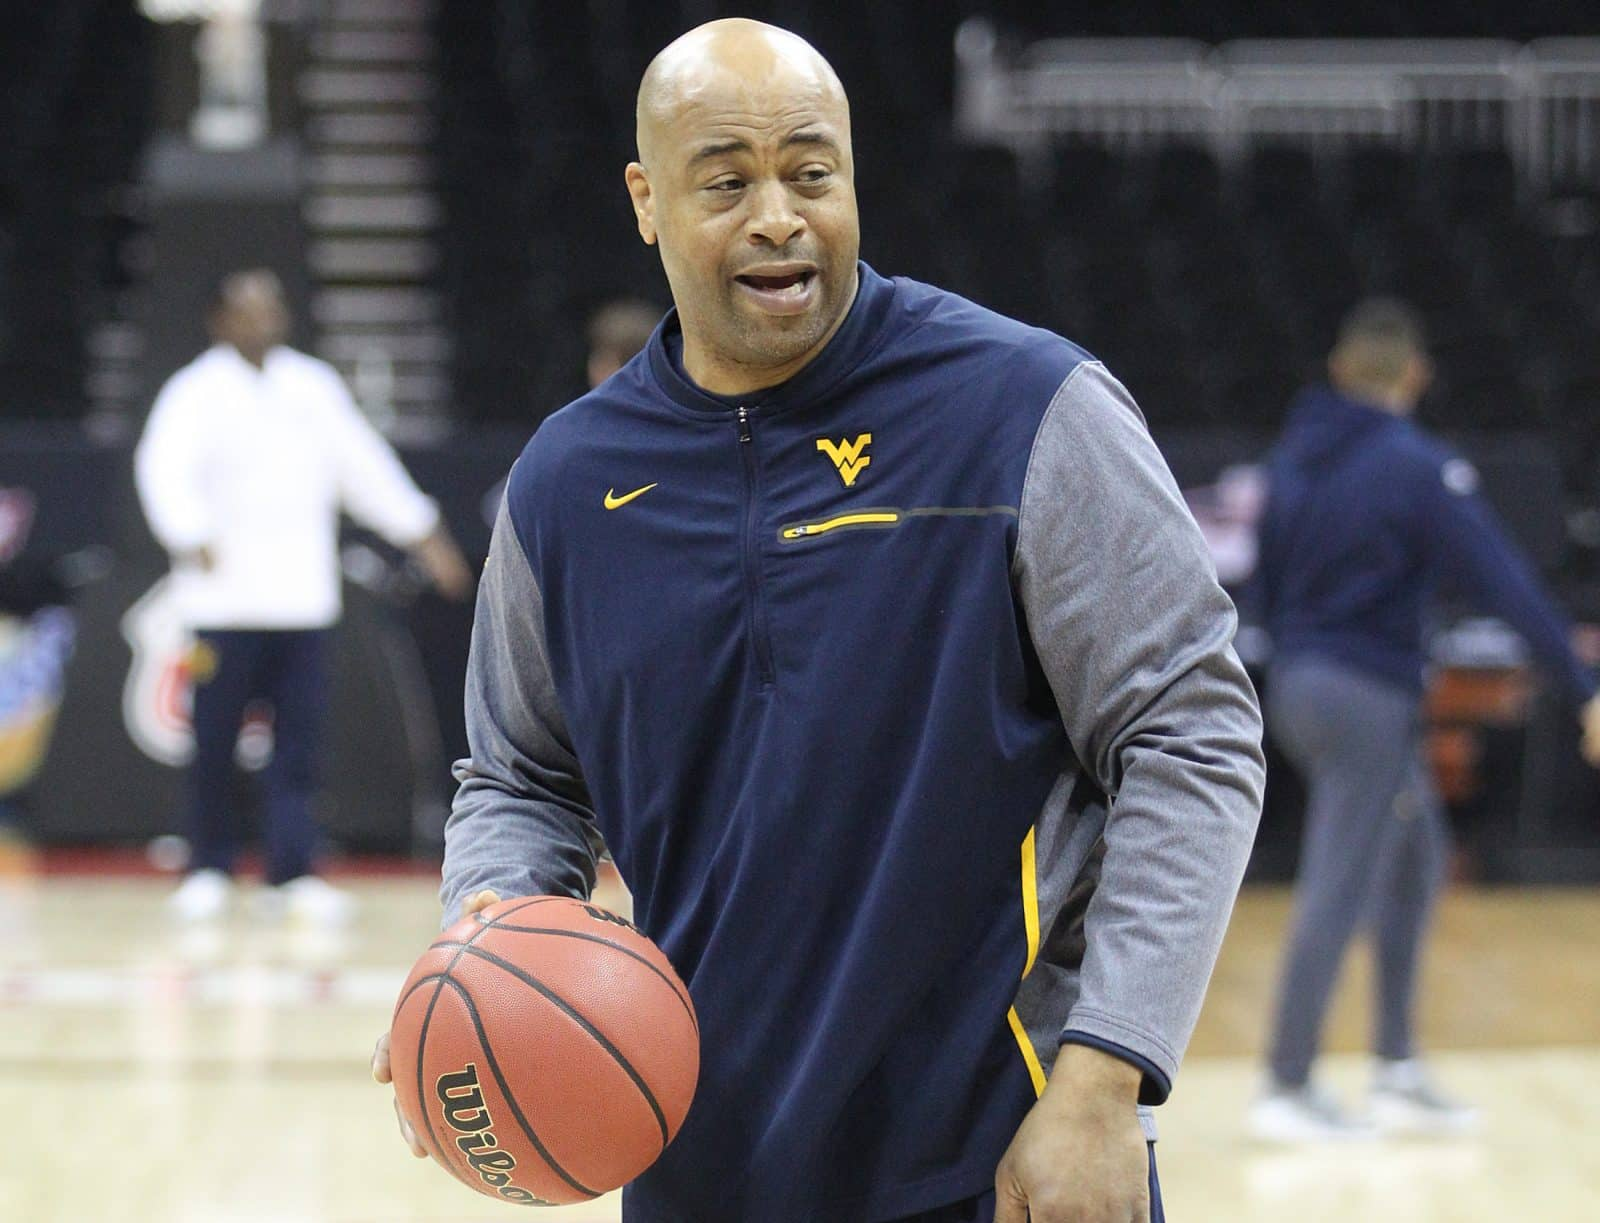 West Virginia Meets Murray State in the NCAA Tournament